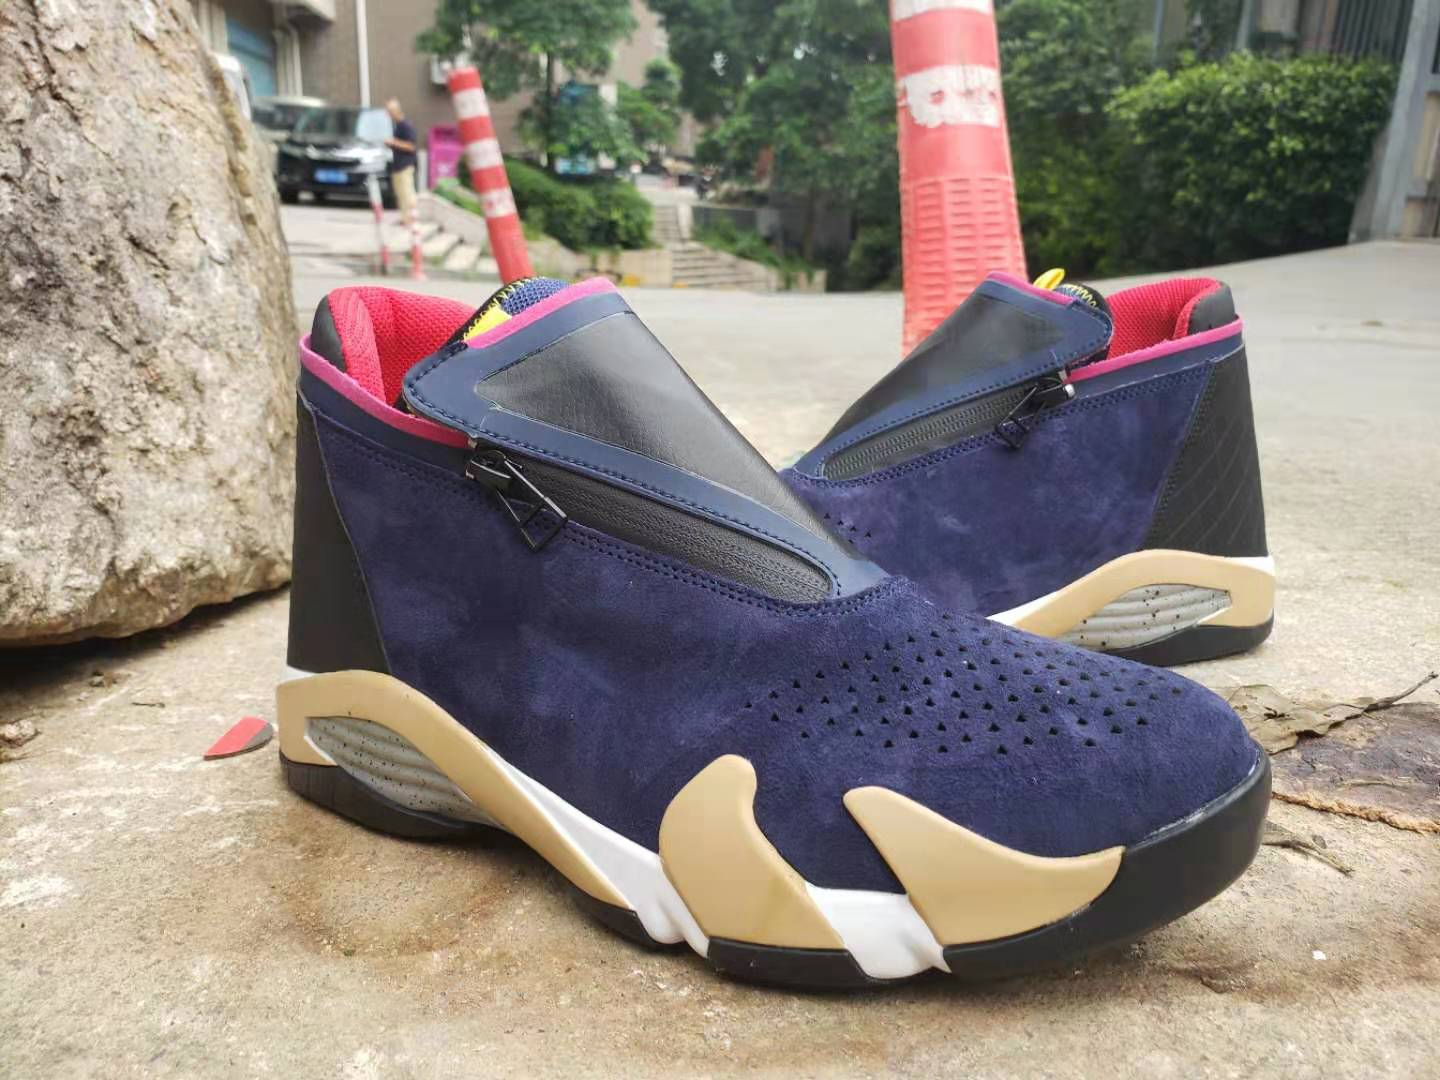 2019 Men Jordan 14 Retro Zipper Navy Blue Brown Red Shoes